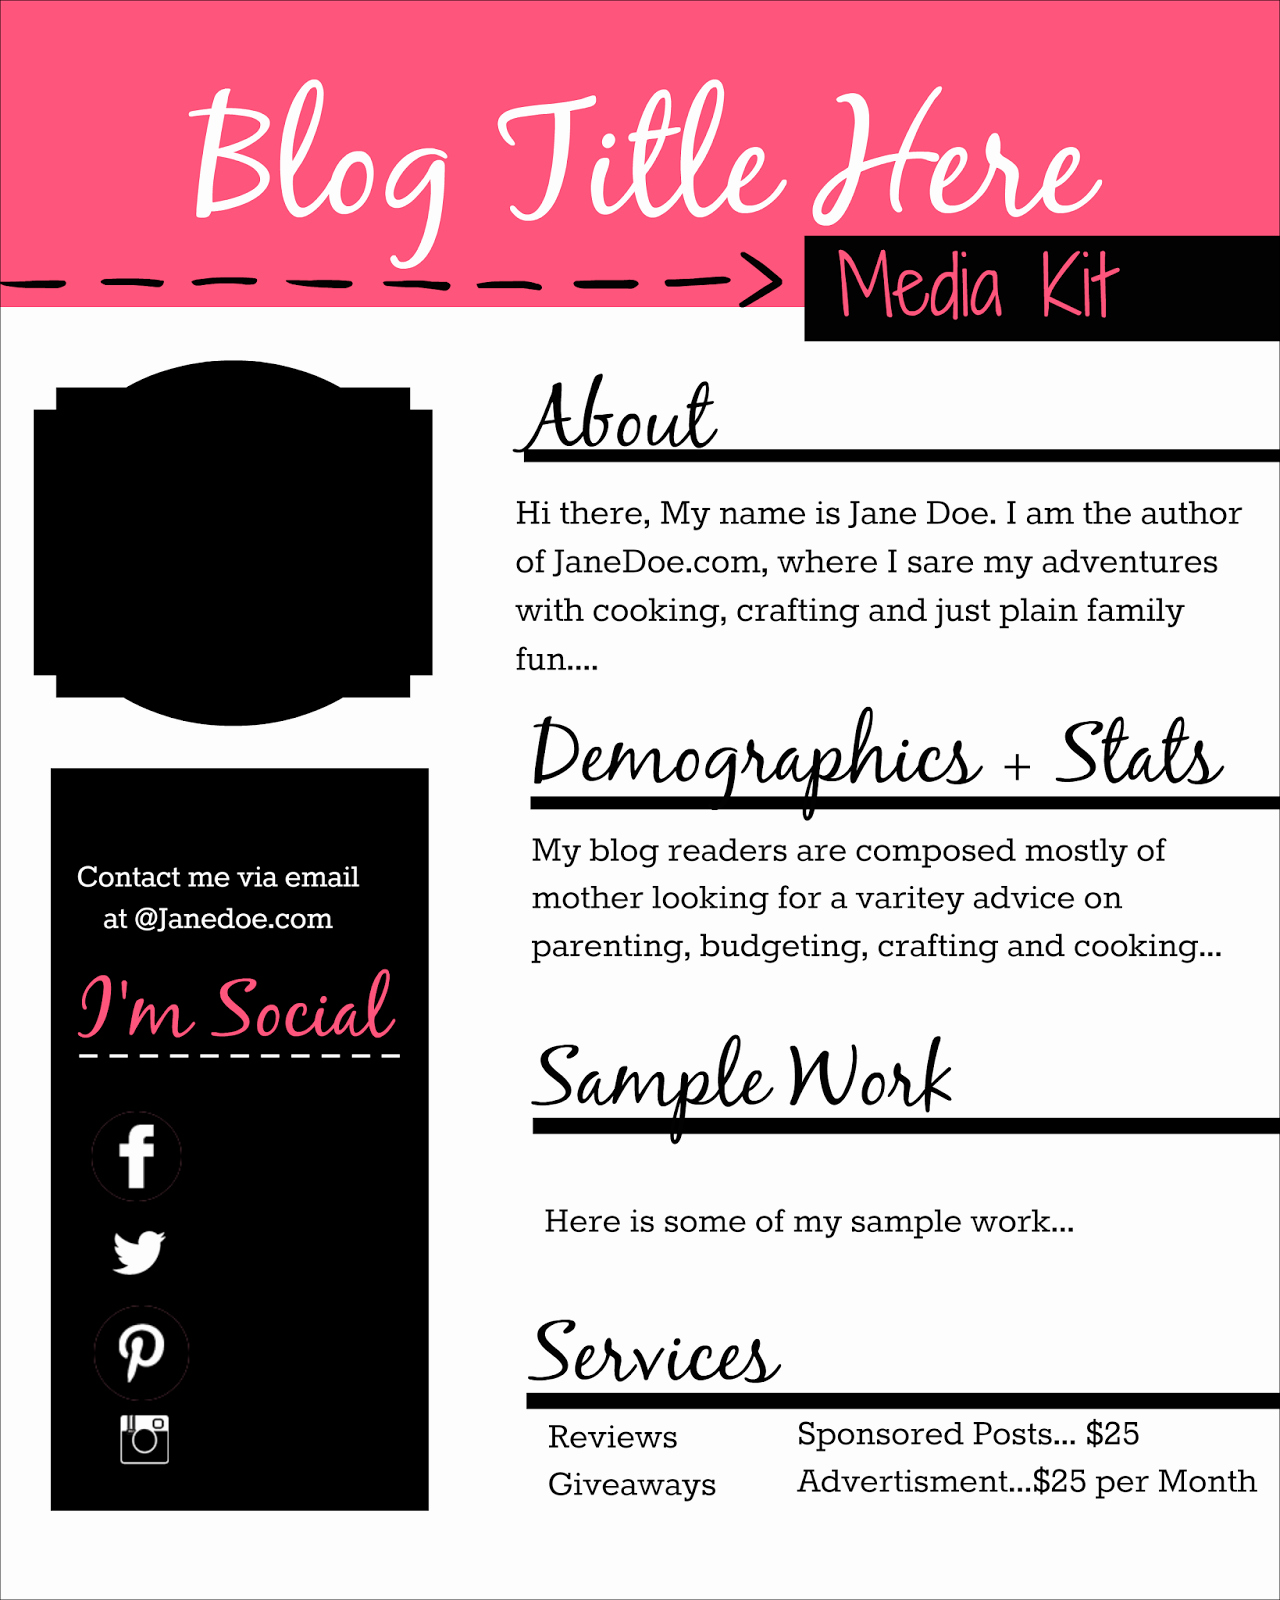 Blogger Media Kit Template Inspirational How to Design A Free Media Kit for Your Blog Premade